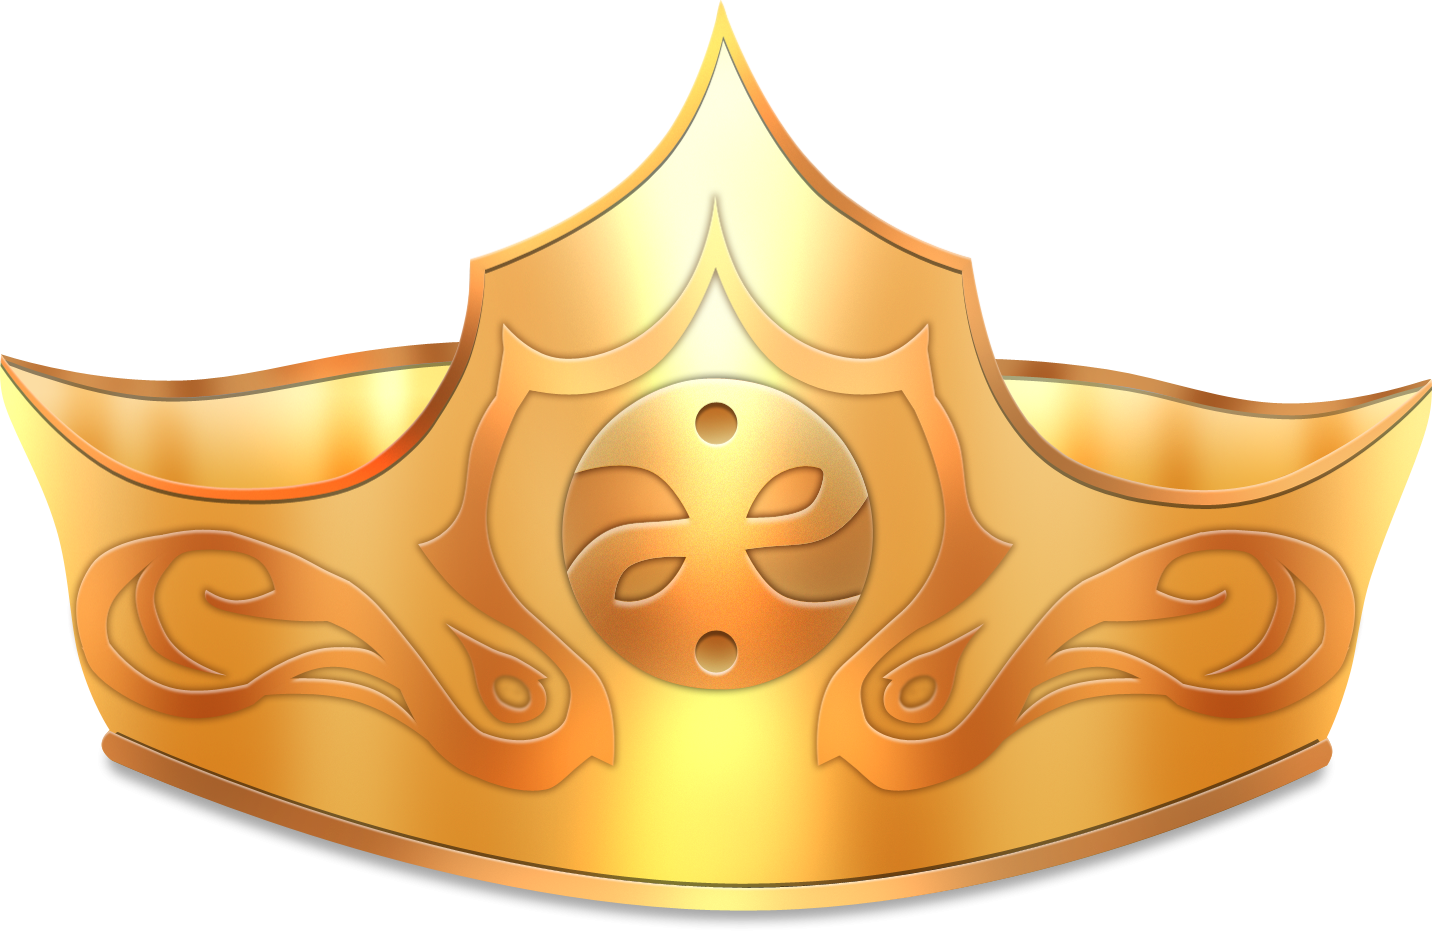 Crown emoji clipart png transparent library Gold Crown Png Original Background Transparent png transparent library